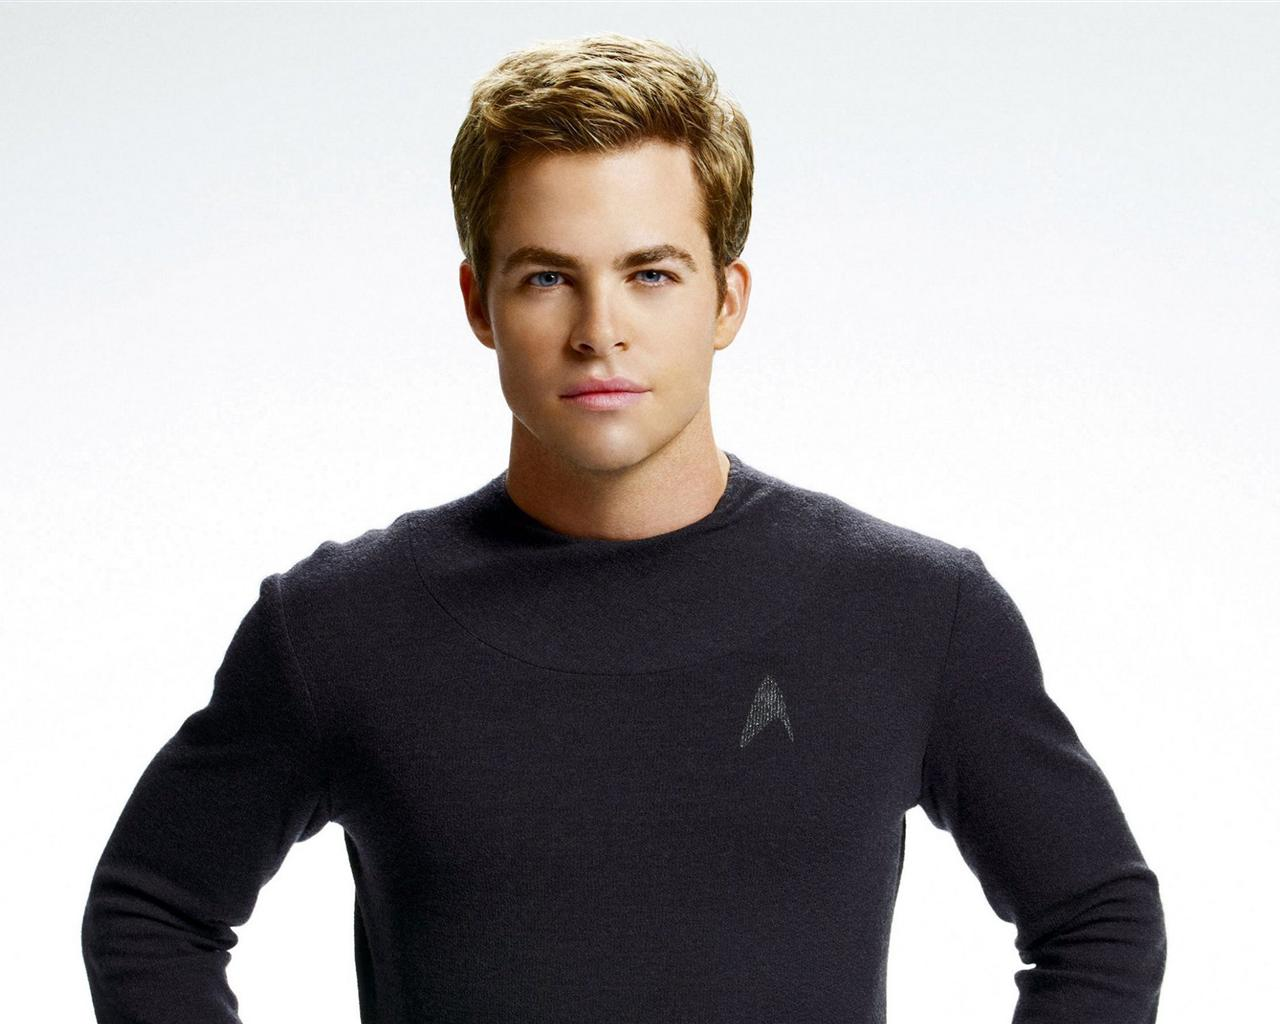 ... chris pine images (8) ...